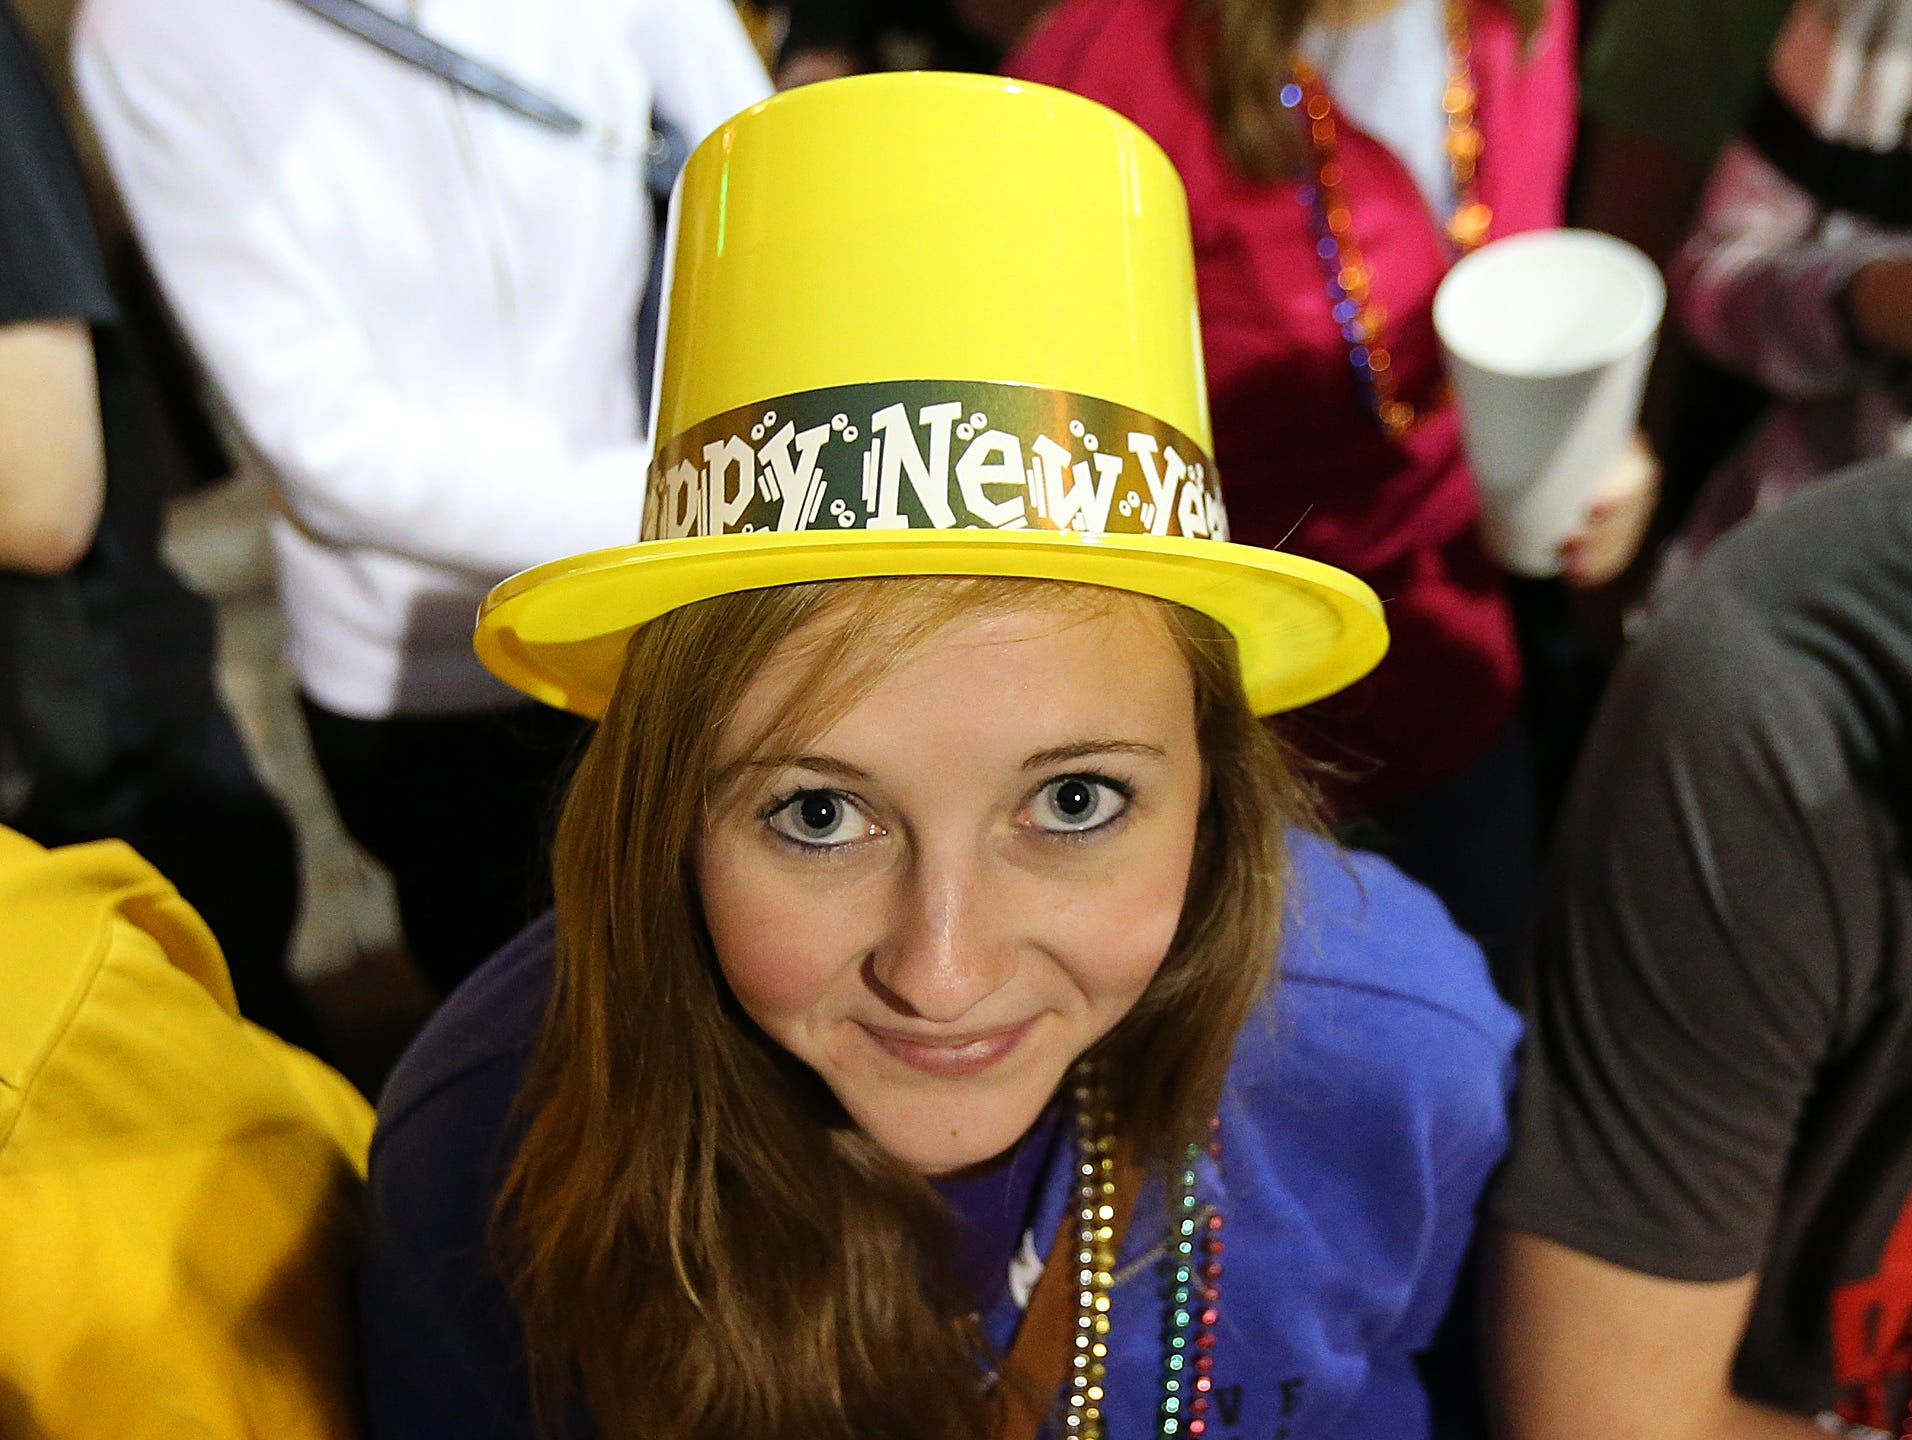 Hawkeye fan Torri Flickinger, 17, of Cedar Rapids shows her Hawkeye colors and festive spirit with a yellow New Year hat during the Outback Bowl parade on Tuesday, Dec. 31, 2013, in Tampa, Florida. (Bryon Houlgrave/The Register)